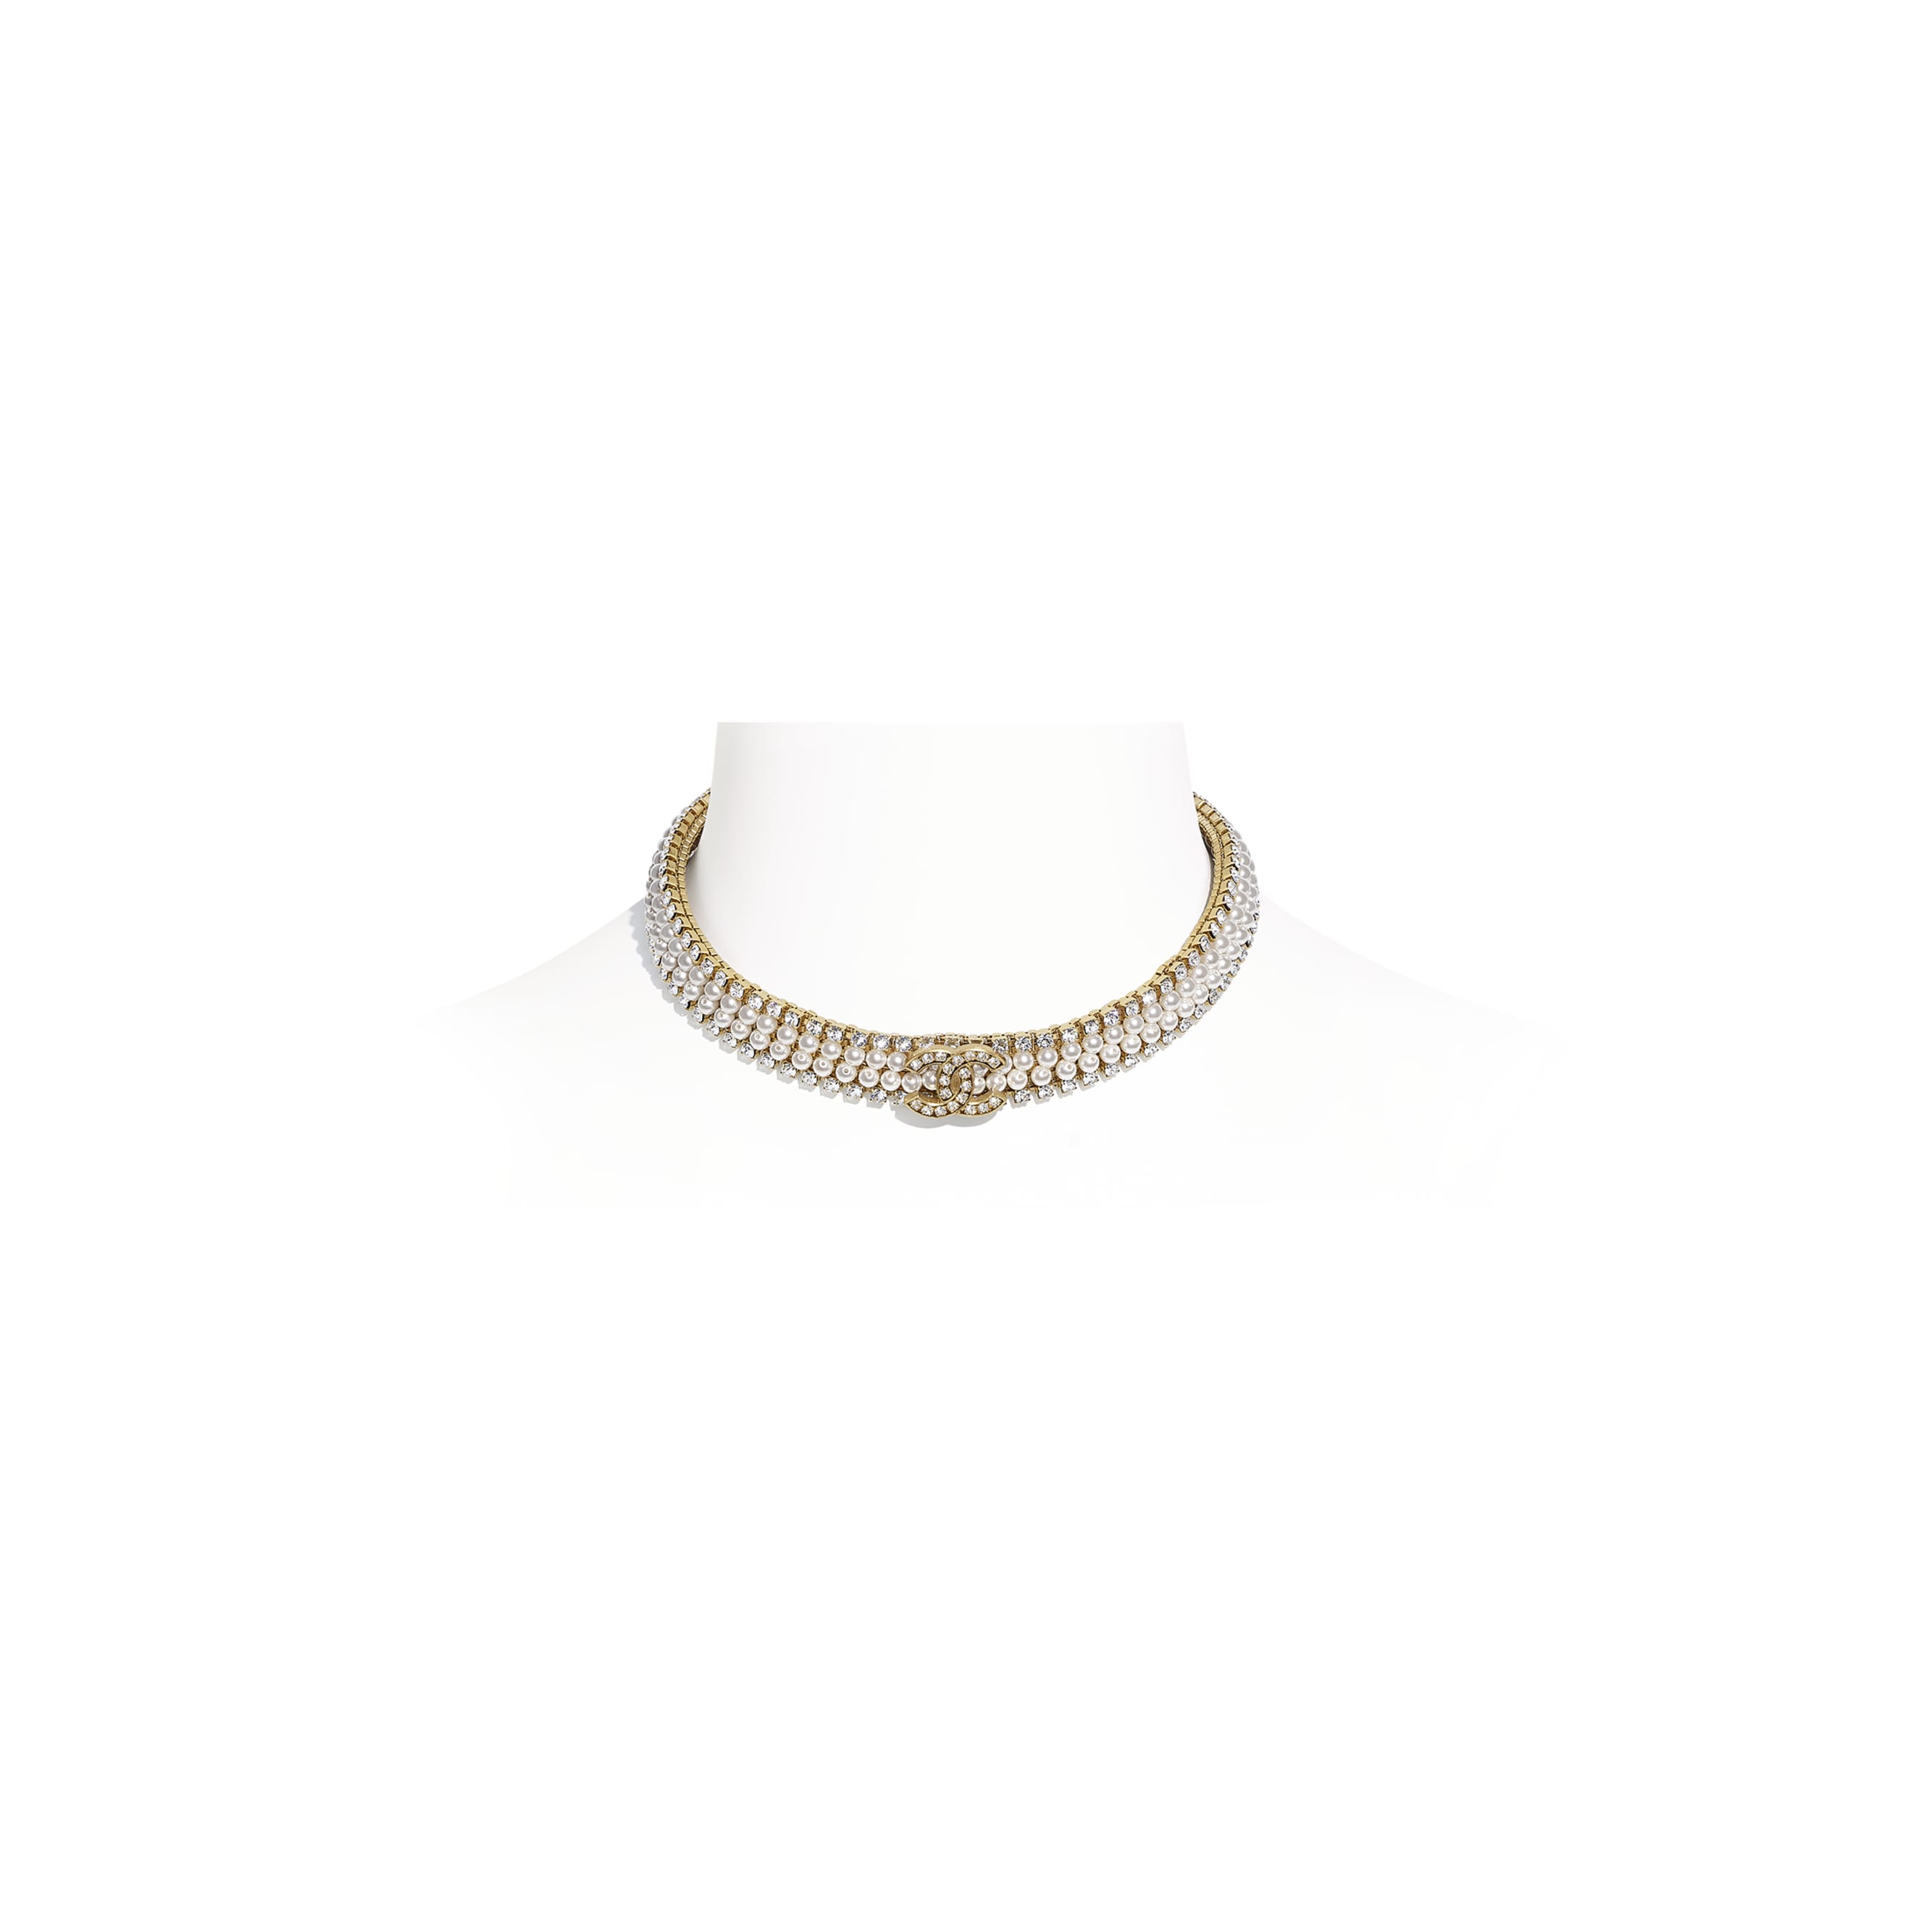 Choker - Gold, Pearly White & Crystal - Metal, Glass Pearls & Diamantés - CHANEL - Default view - see standard sized version